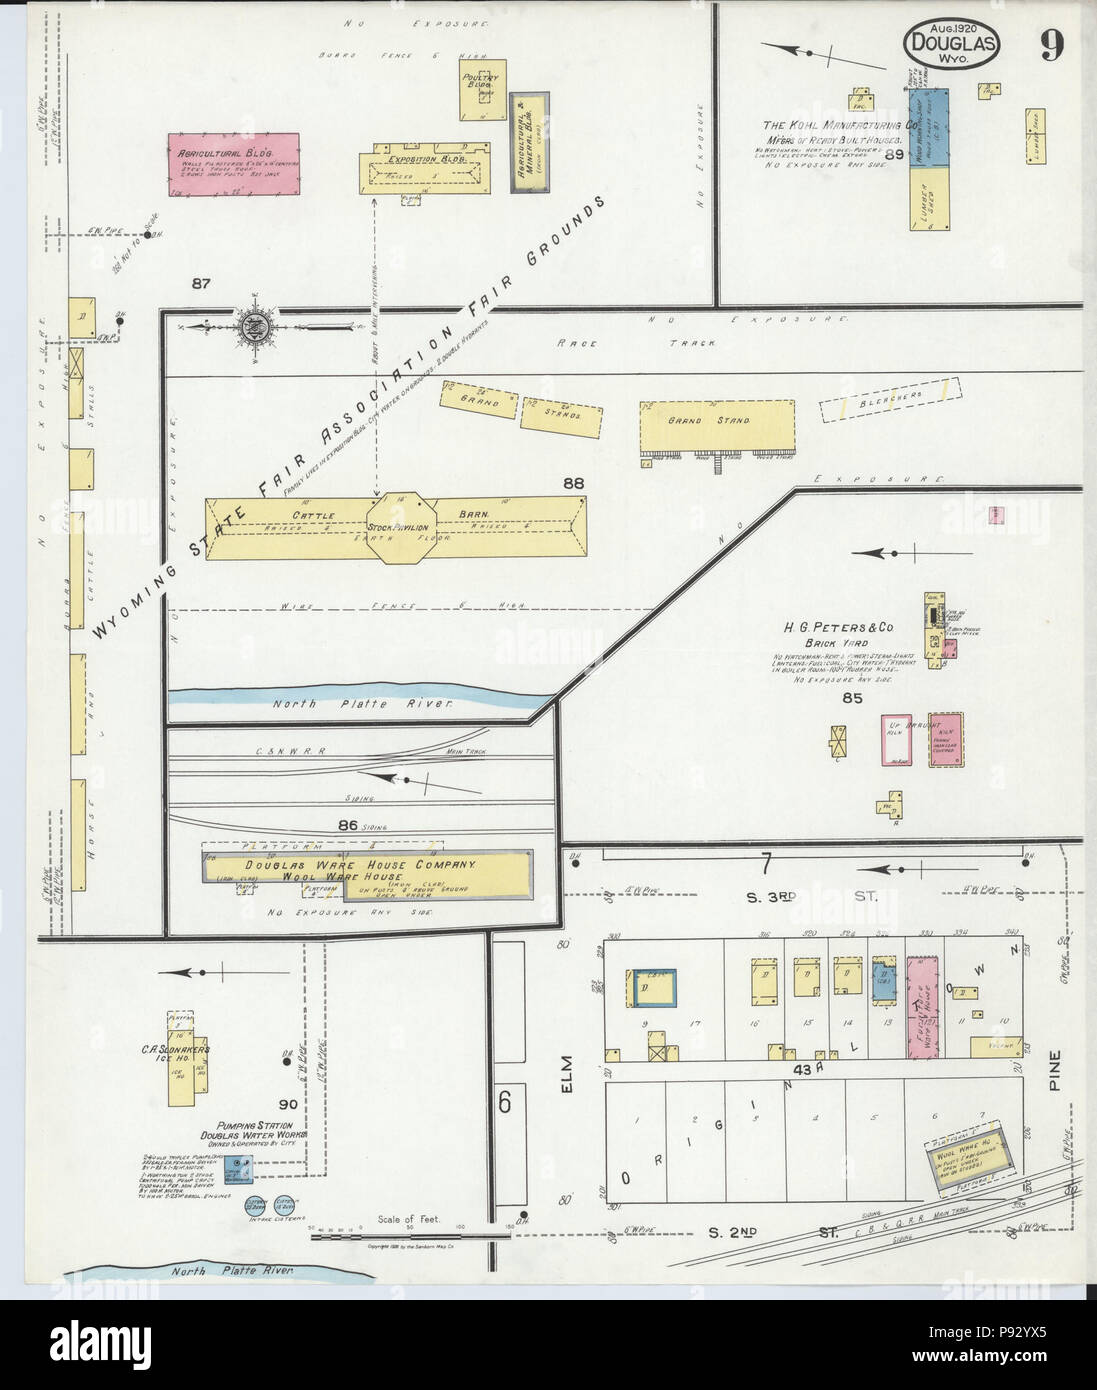 497 Sanborn Fire Insurance Map From Douglas Converse County